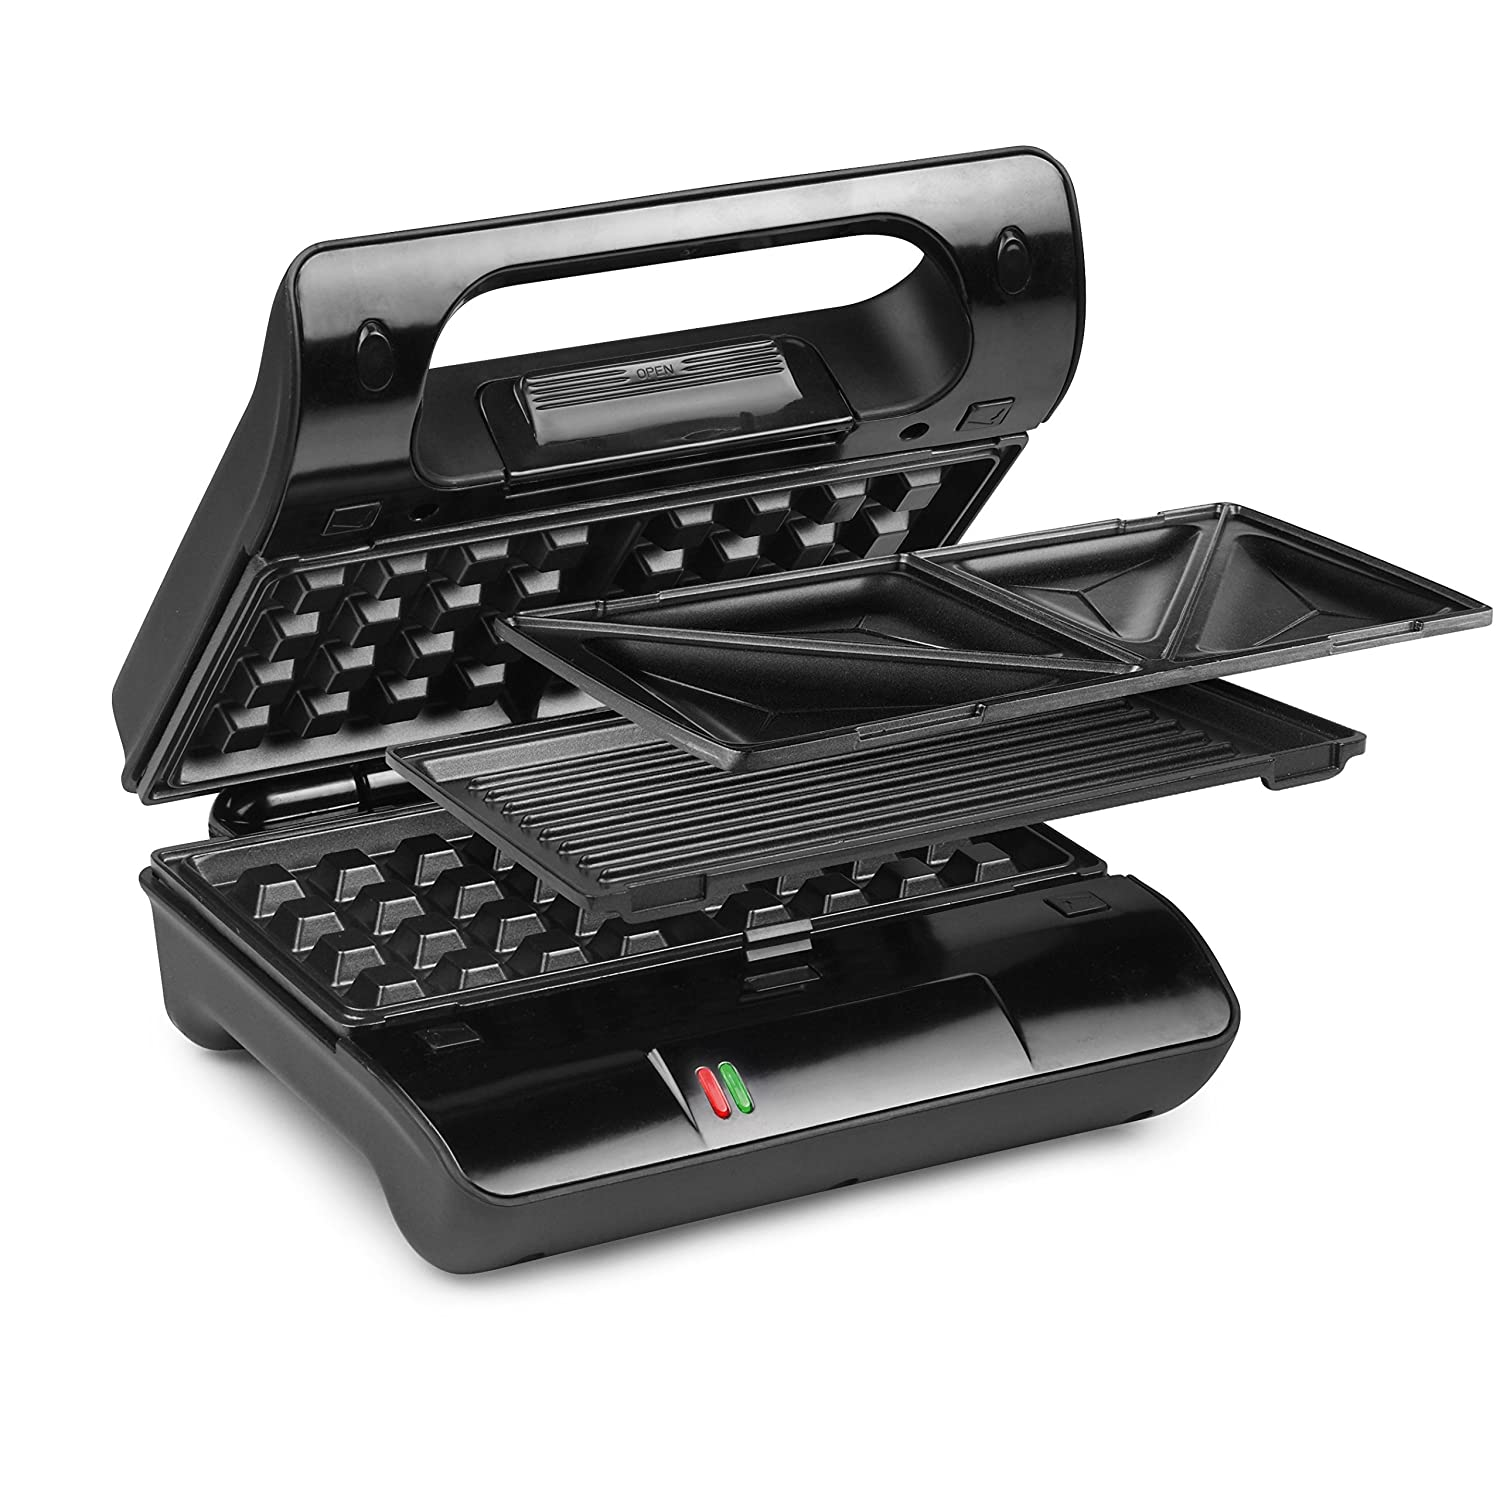 Princess Grill Compact Pro - Sandwichera